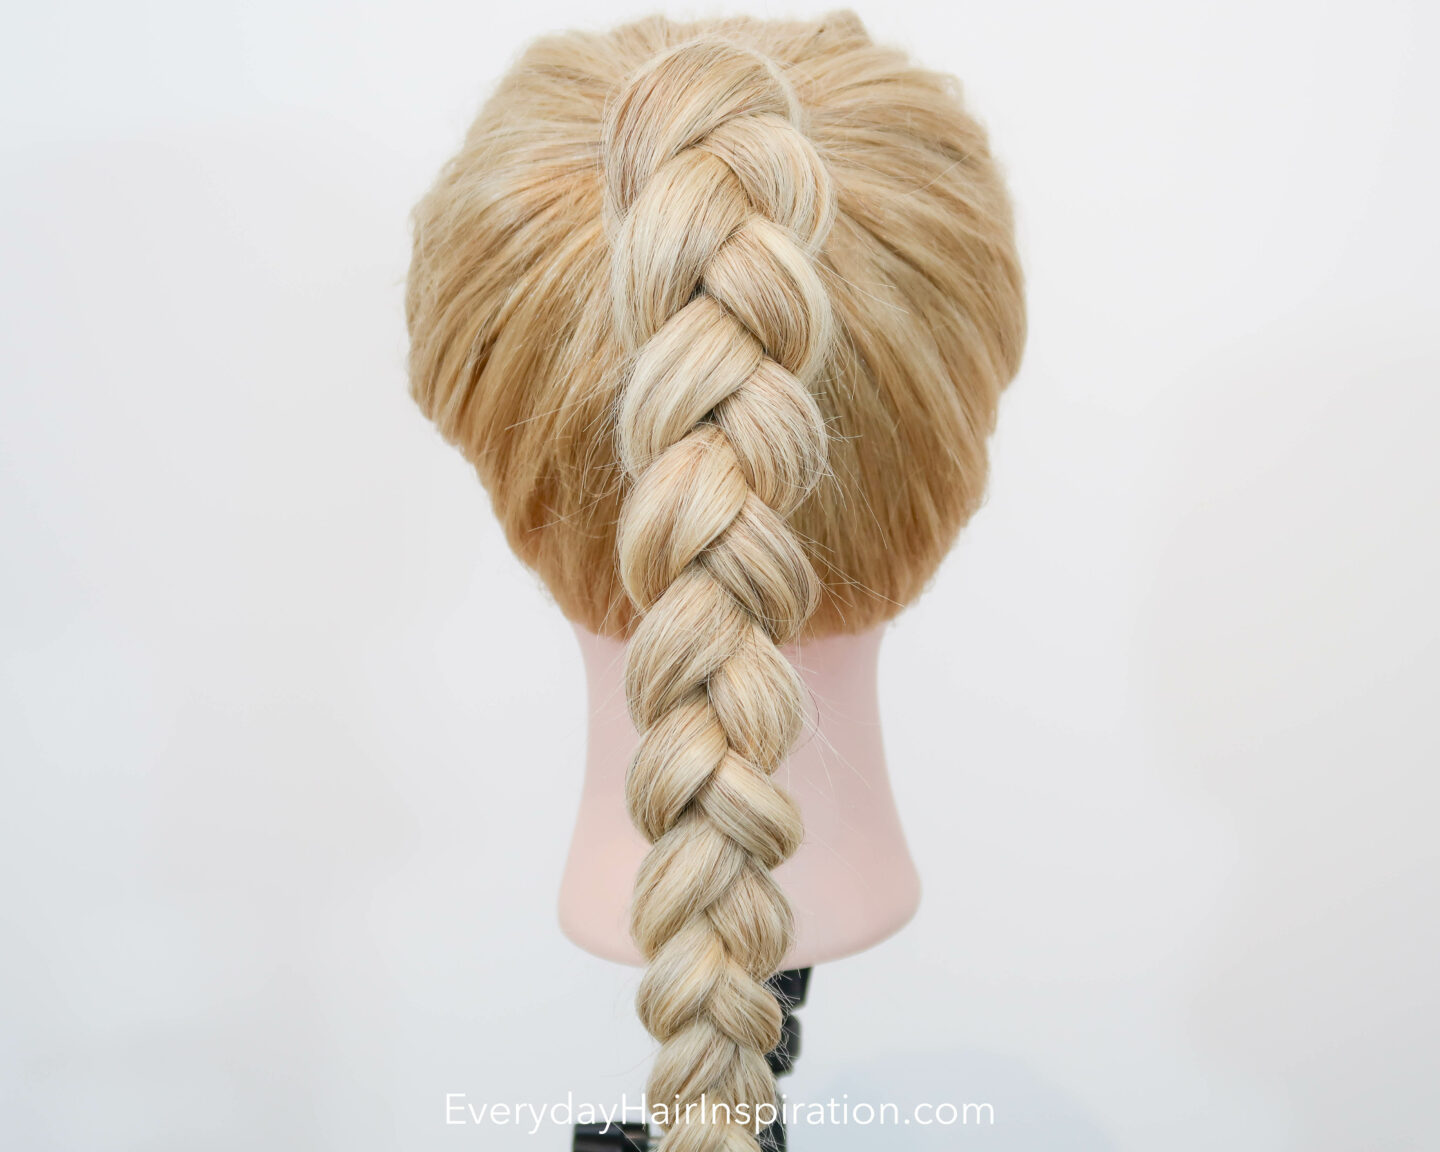 Blonde hairdresser doll seen from the back, with a high ponytail in the hair, with a 3 strand braid, made out of elastics and no braiding.